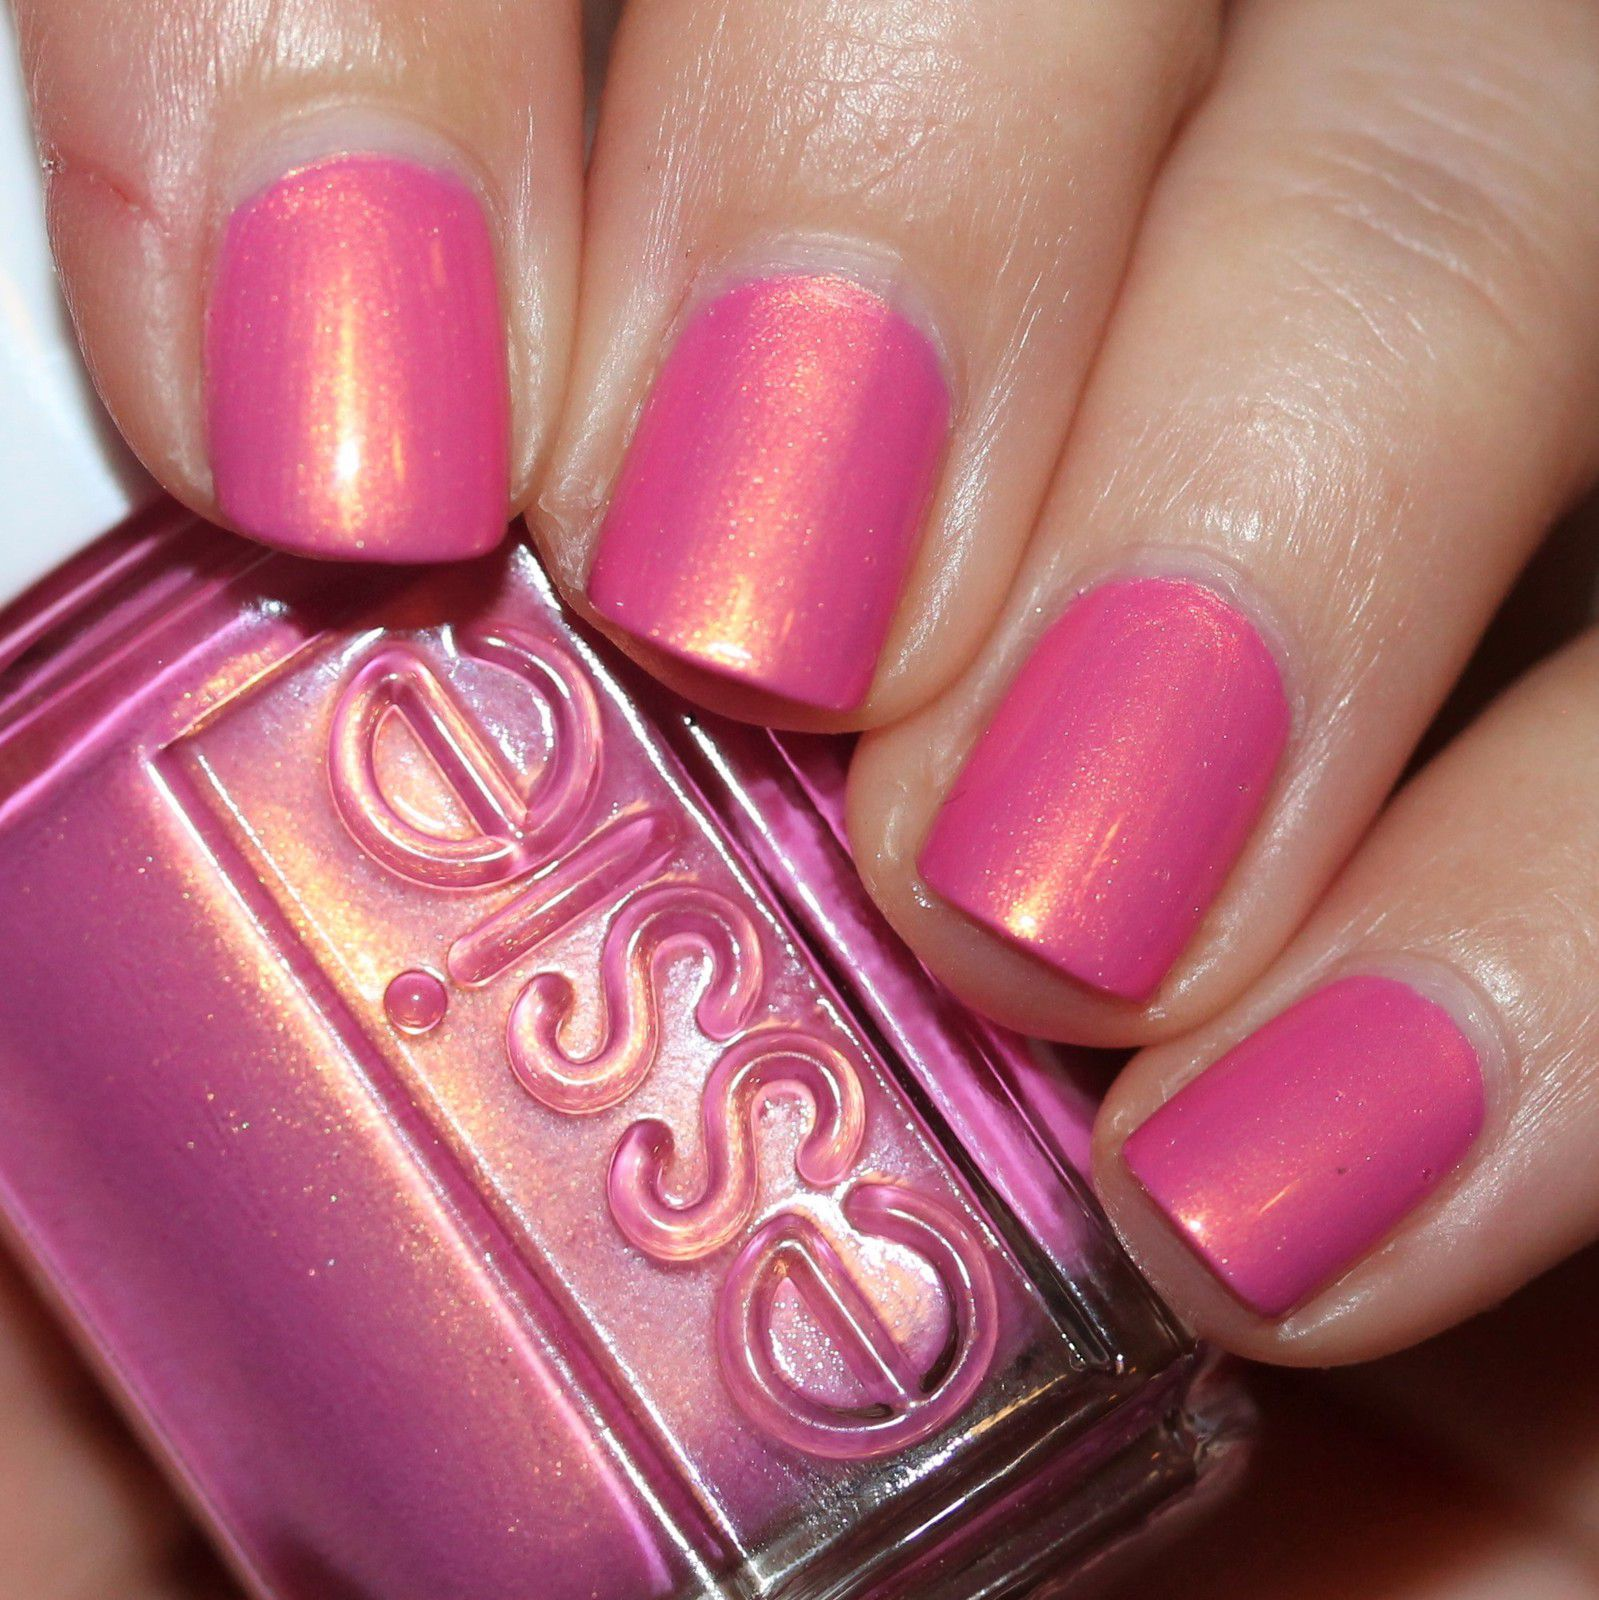 Essie Protein Base Coat / Essie One Way for One / Essie Gel Top Coat